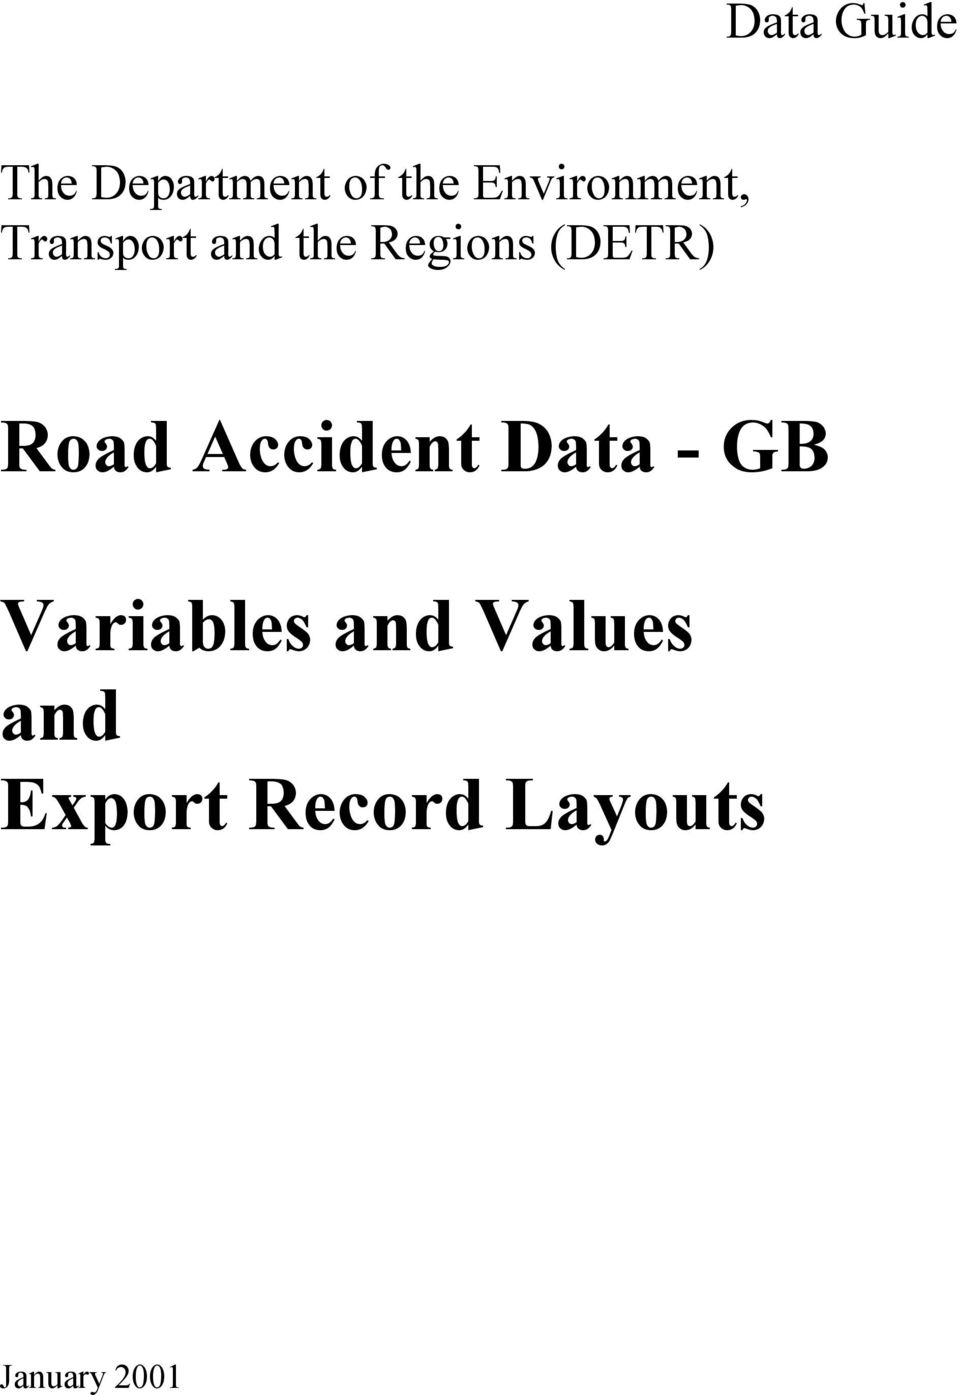 (DETR) Road Accident Data - GB Variables